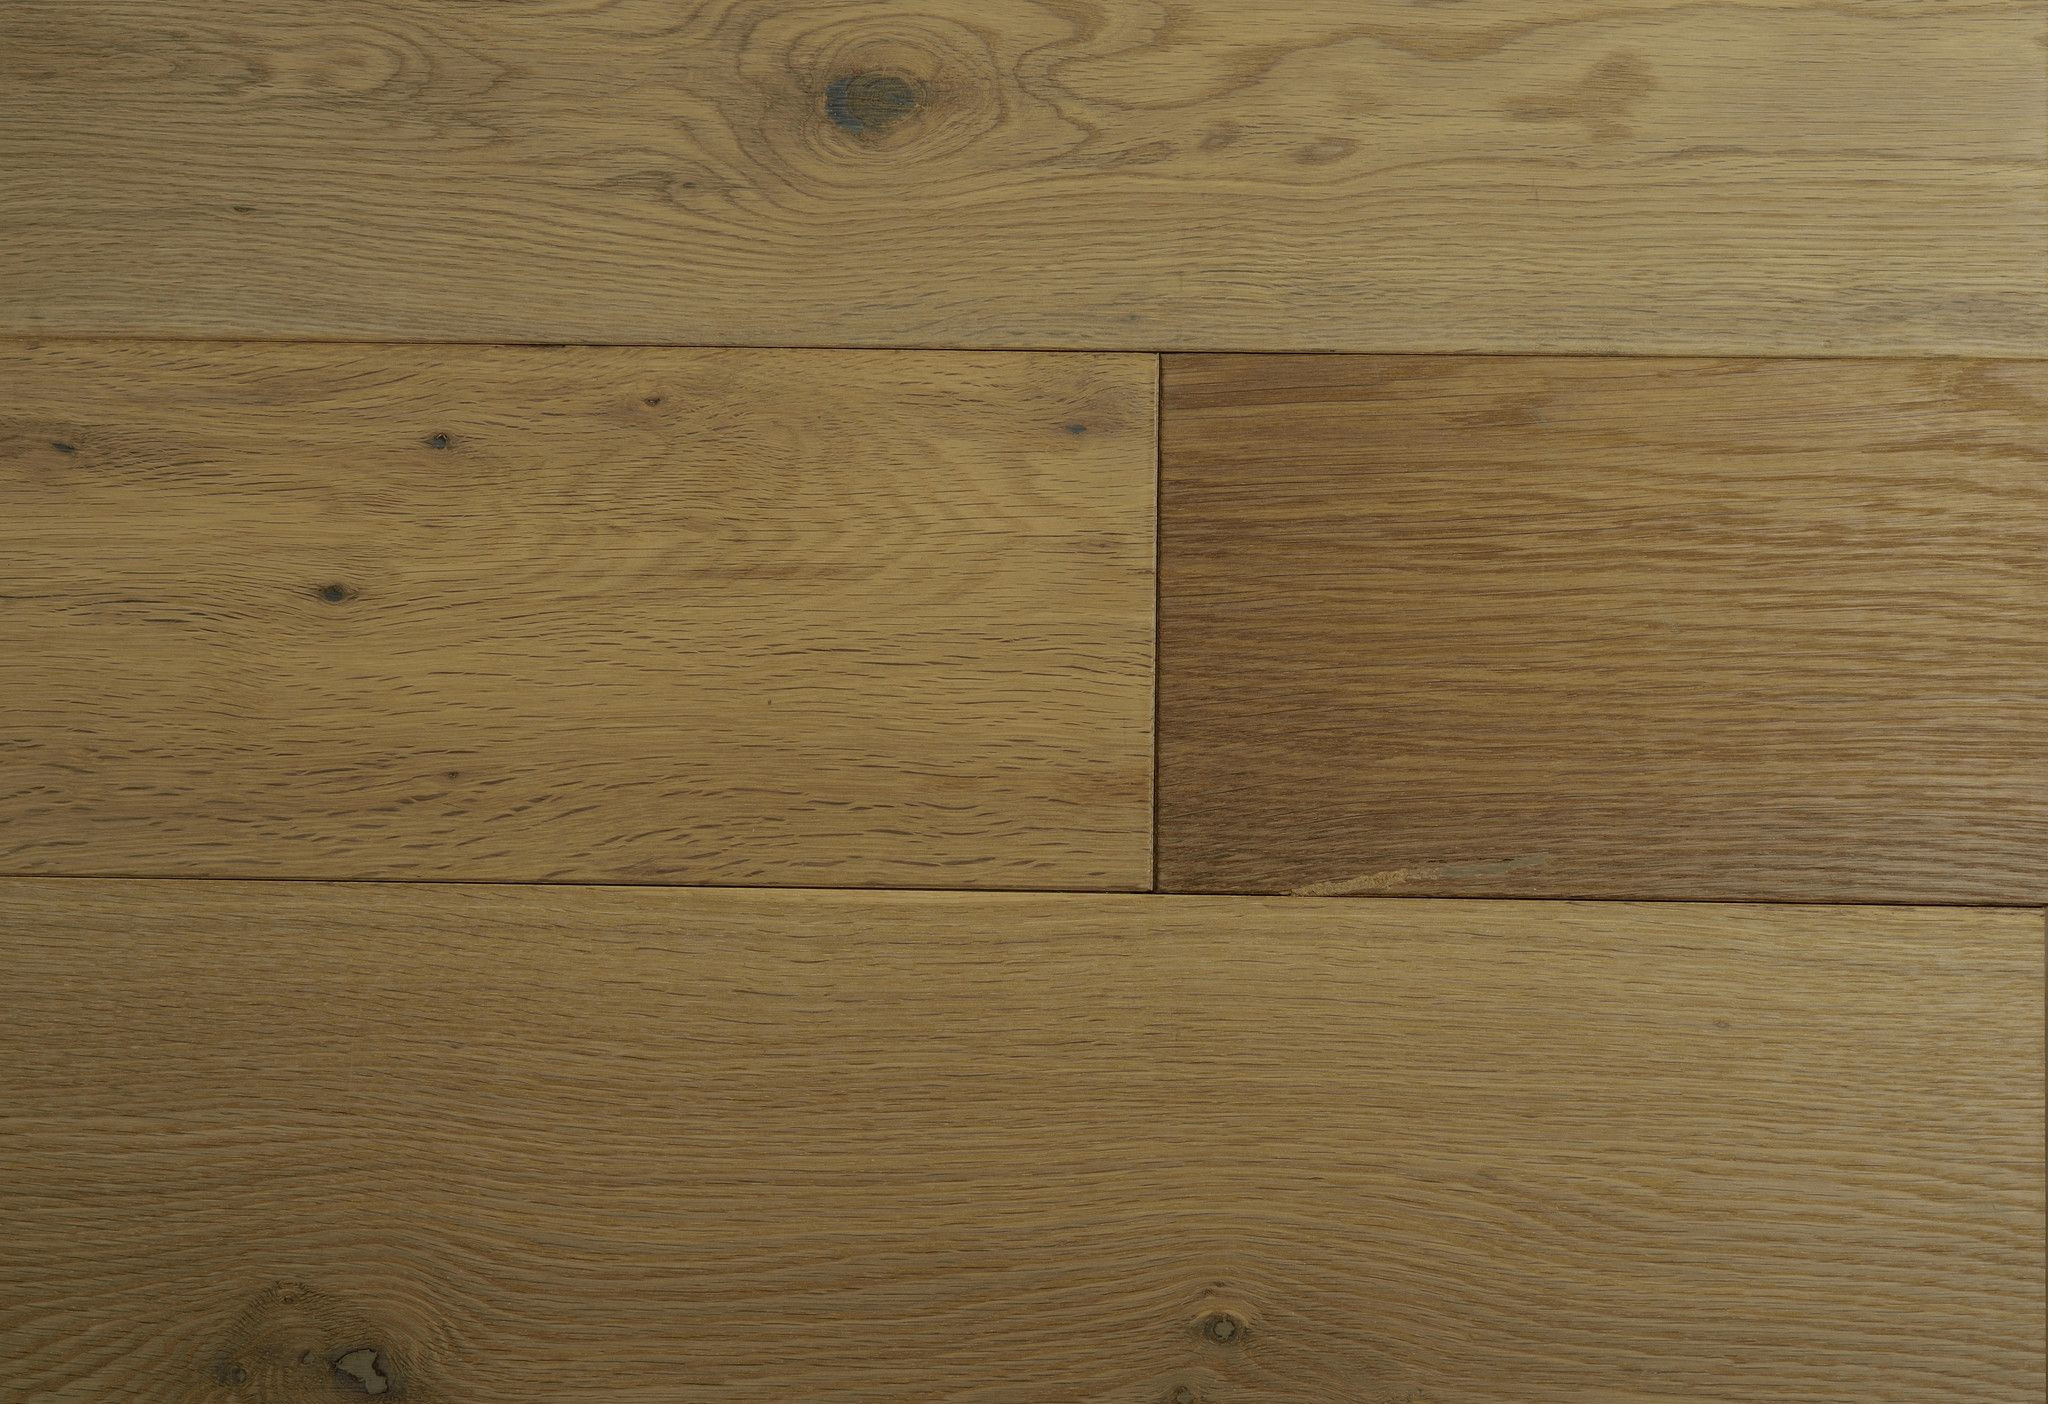 16 Perfect Hardwood Flooring Lengths 2021 free download hardwood flooring lengths of everbrite white oak smoked solid 3 4 white oak wax and products with regard to everbrite white oak smoked solid 3 4